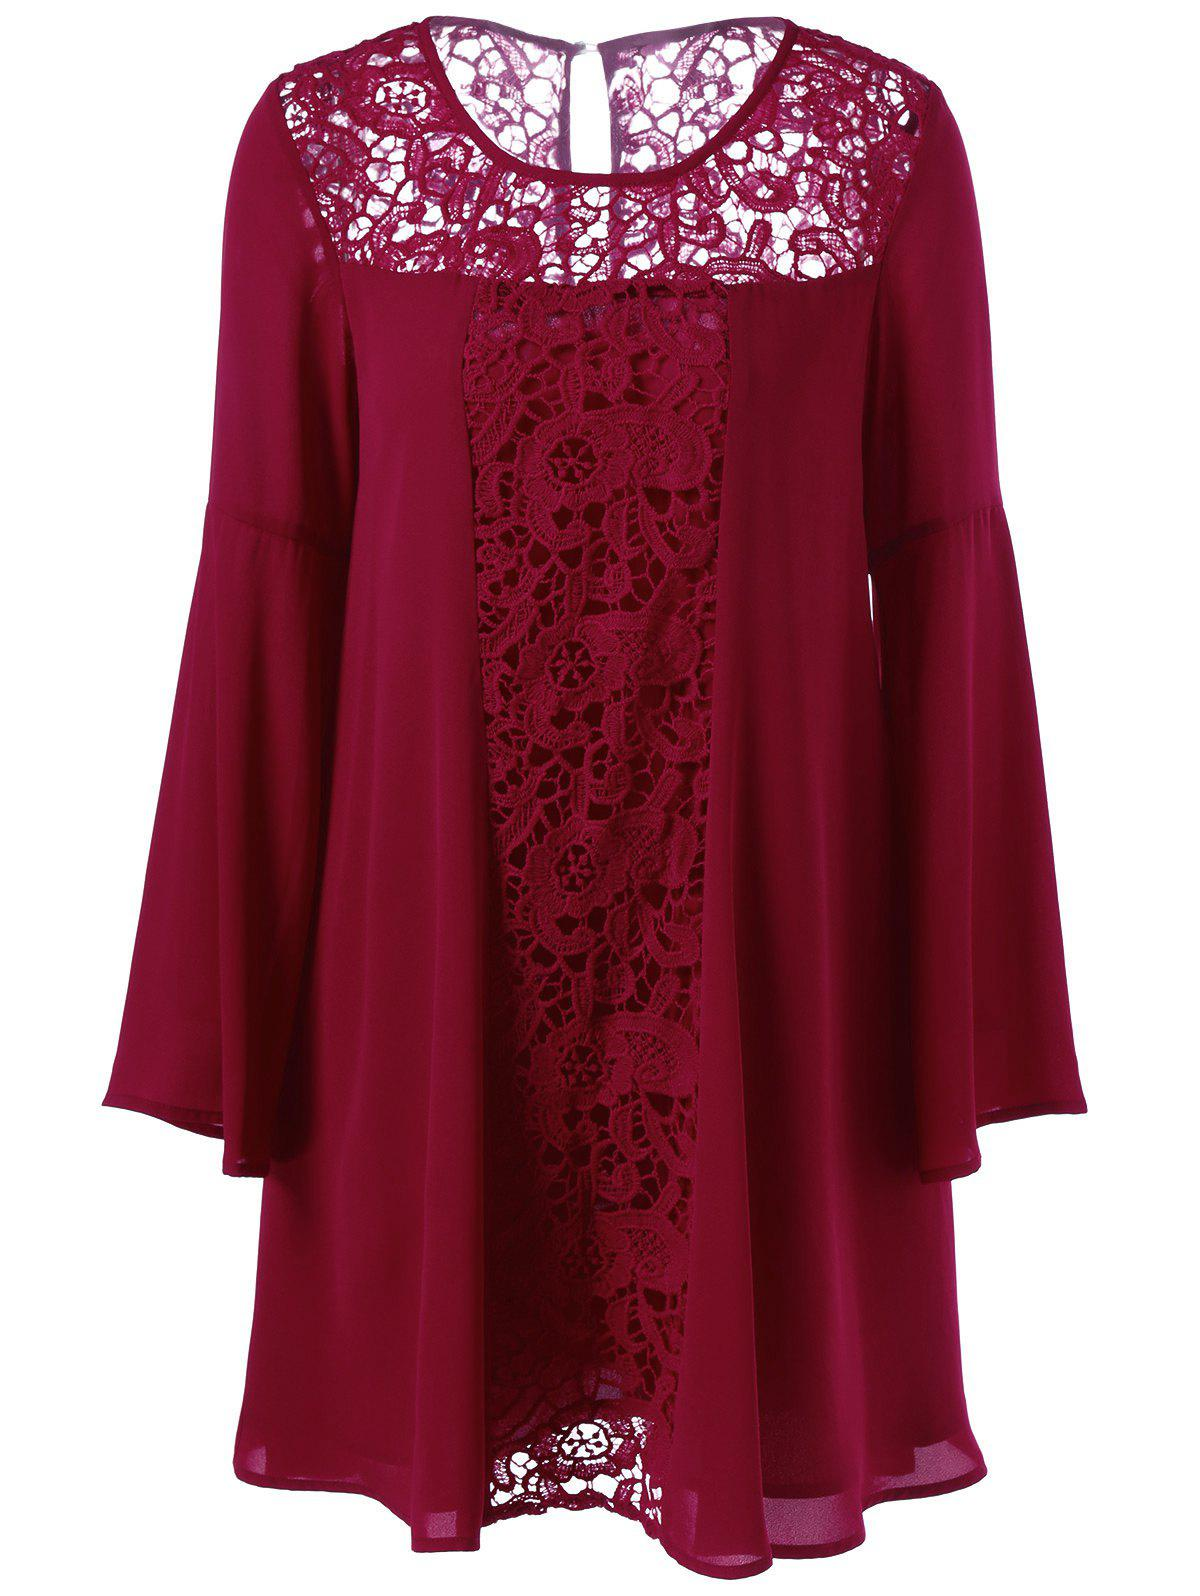 Lace Panel Flare Sleeves Tunic BlouseWomen<br><br><br>Size: 2XL<br>Color: DEEP RED